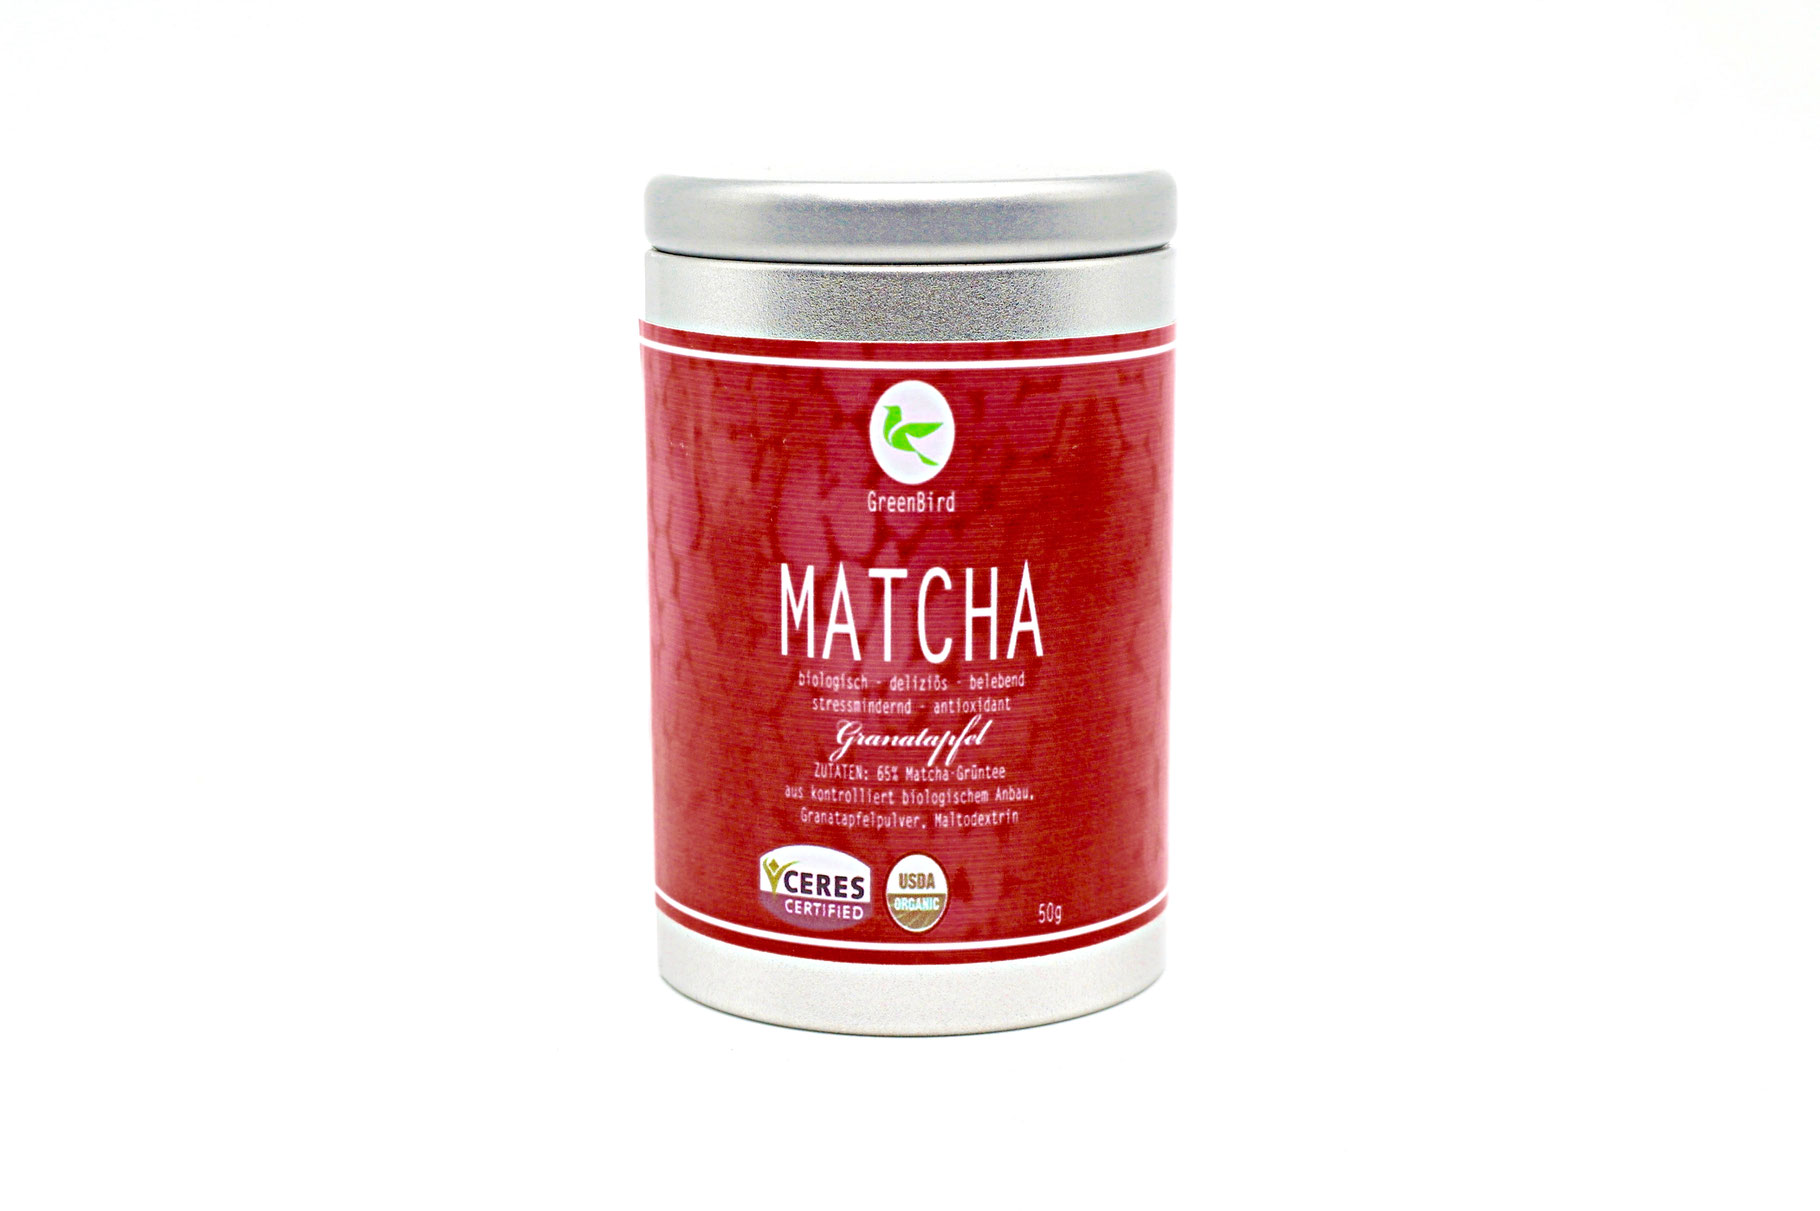 matcha tee granatapfel bio 50 g matcha tee g nstig kaufen auf ich. Black Bedroom Furniture Sets. Home Design Ideas